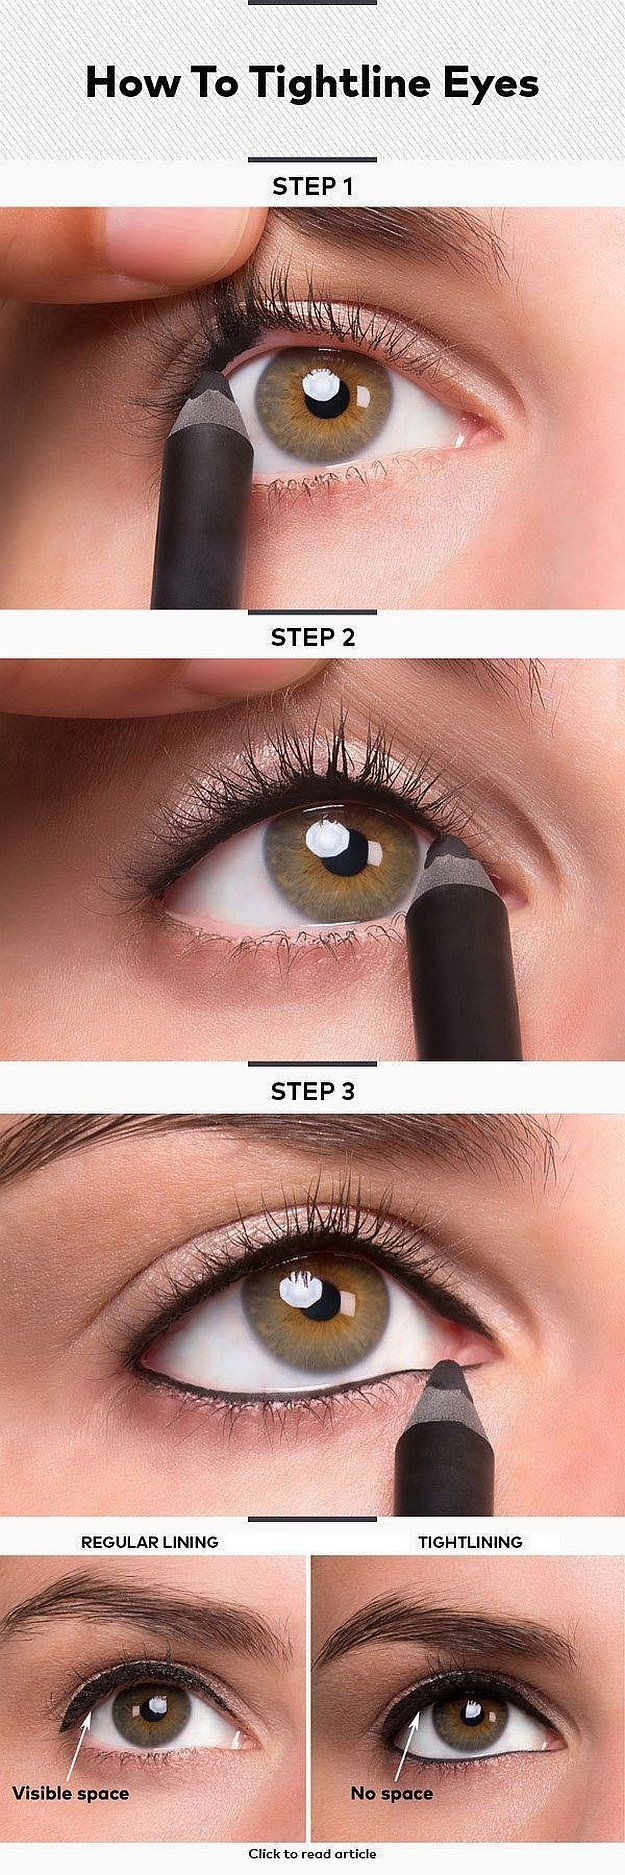 Tightlining 101: Make Your Eyes Bigger & Lashes Thicker, check it out at makeupt